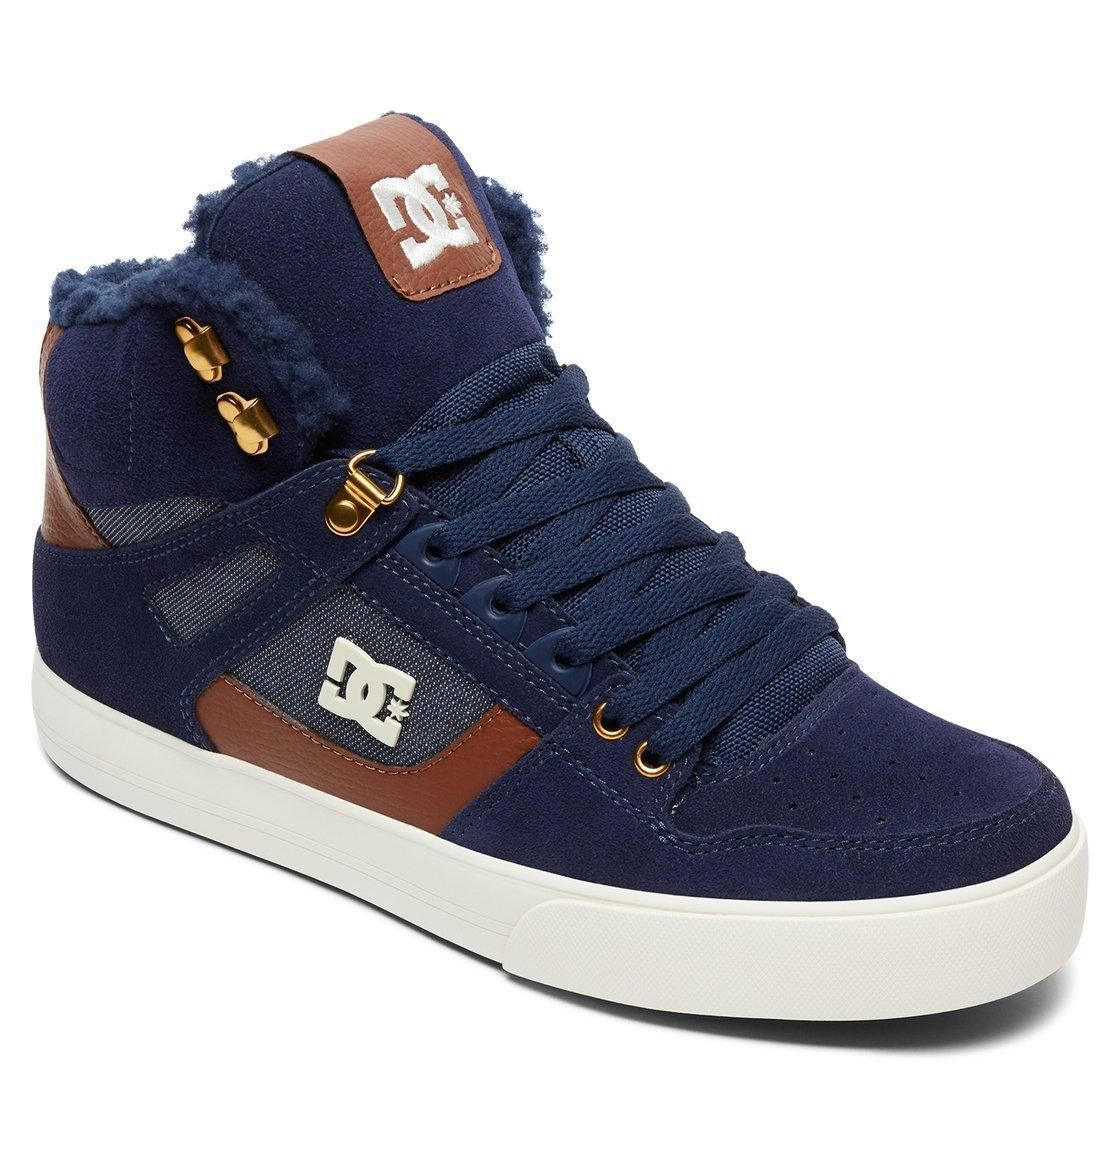 DC Shoes Men s Crisis High Top Shoes ADYS100032 Size 10 Black  Blue  NEW   DCShoes  FashionS…  8224e2774ccd6